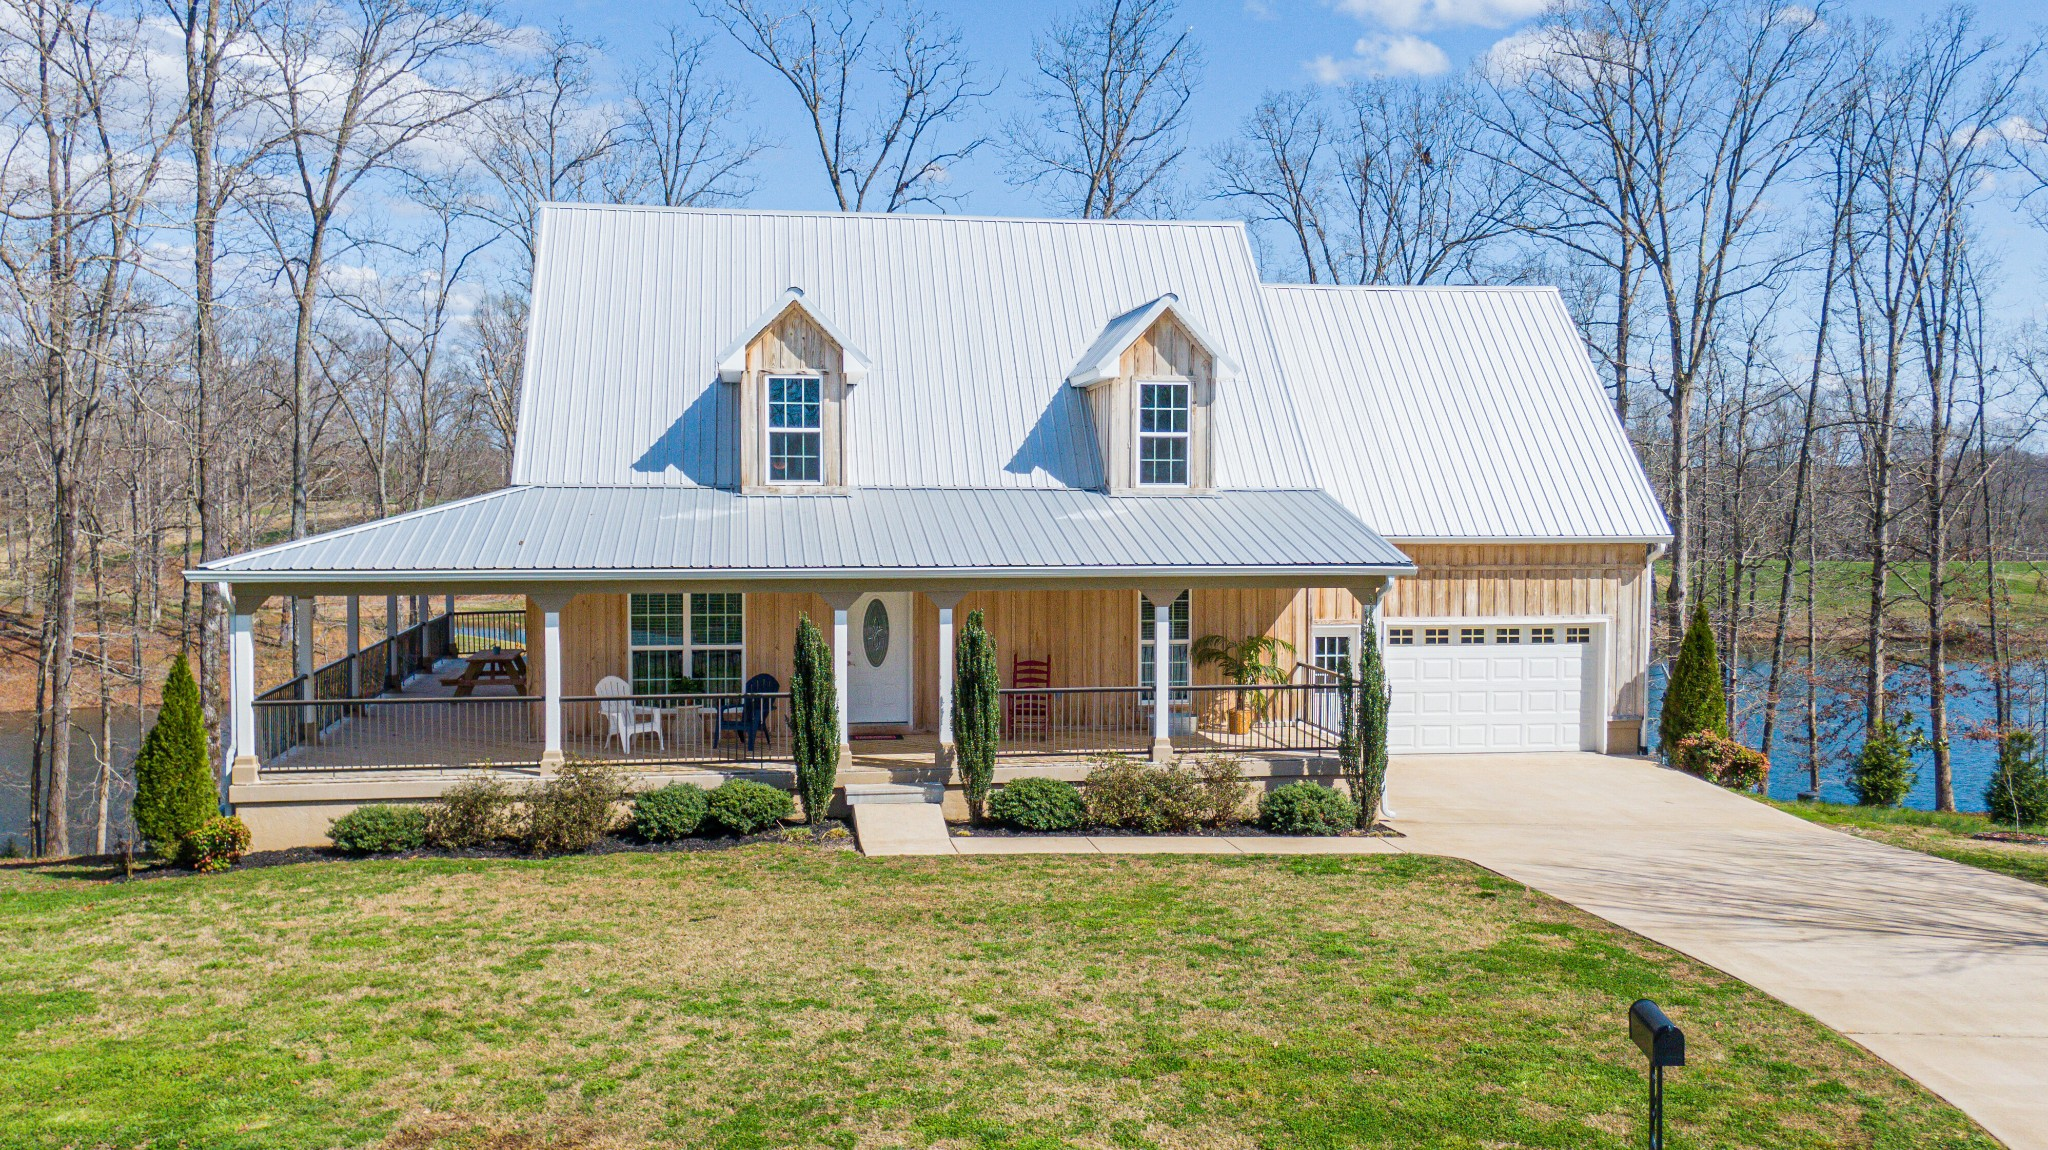 130 Lakeview Dr Property Photo - Summertown, TN real estate listing